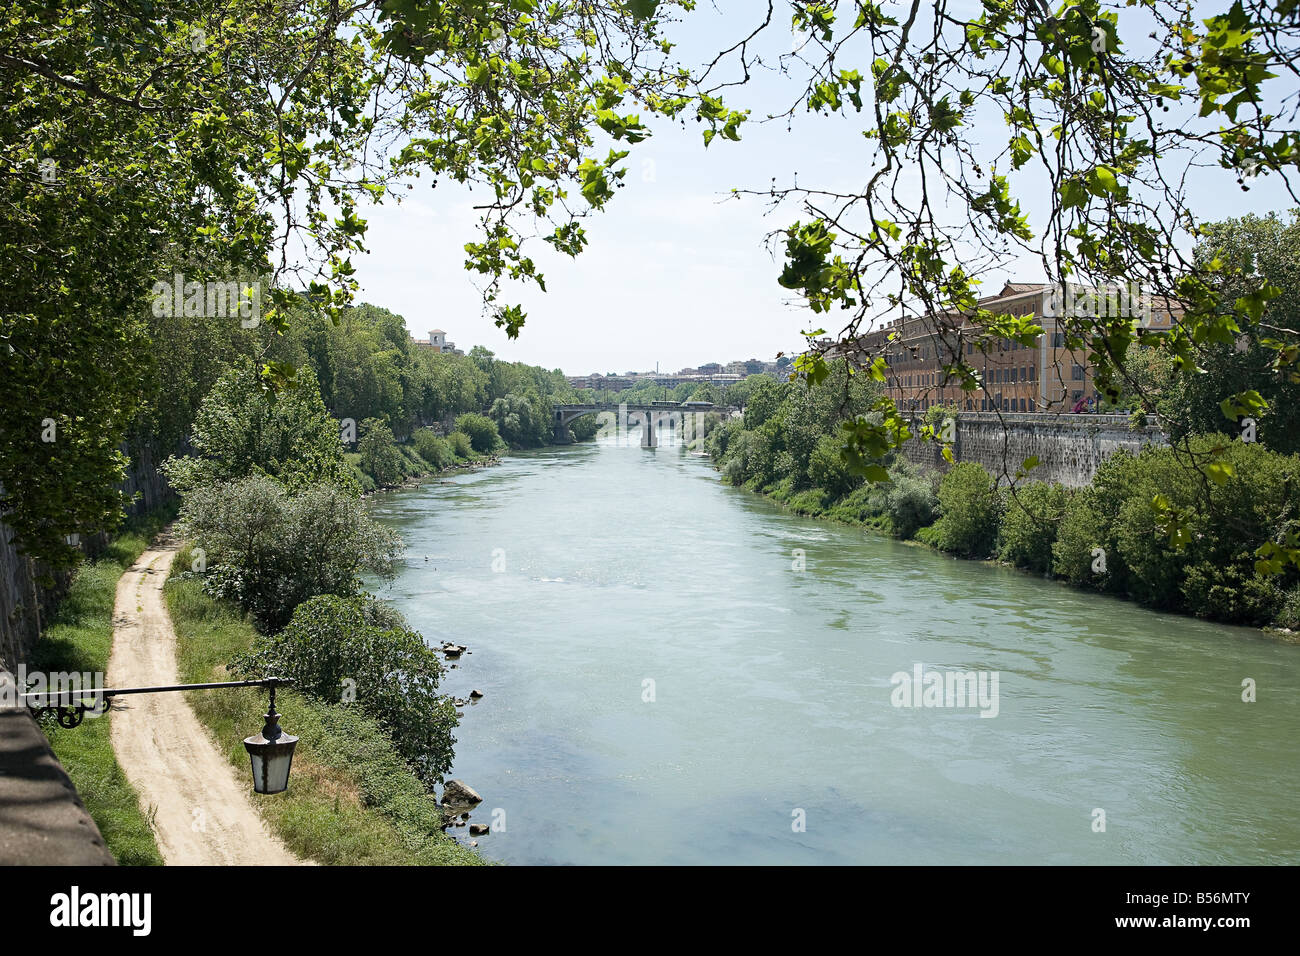 Tiber river - Stock Image